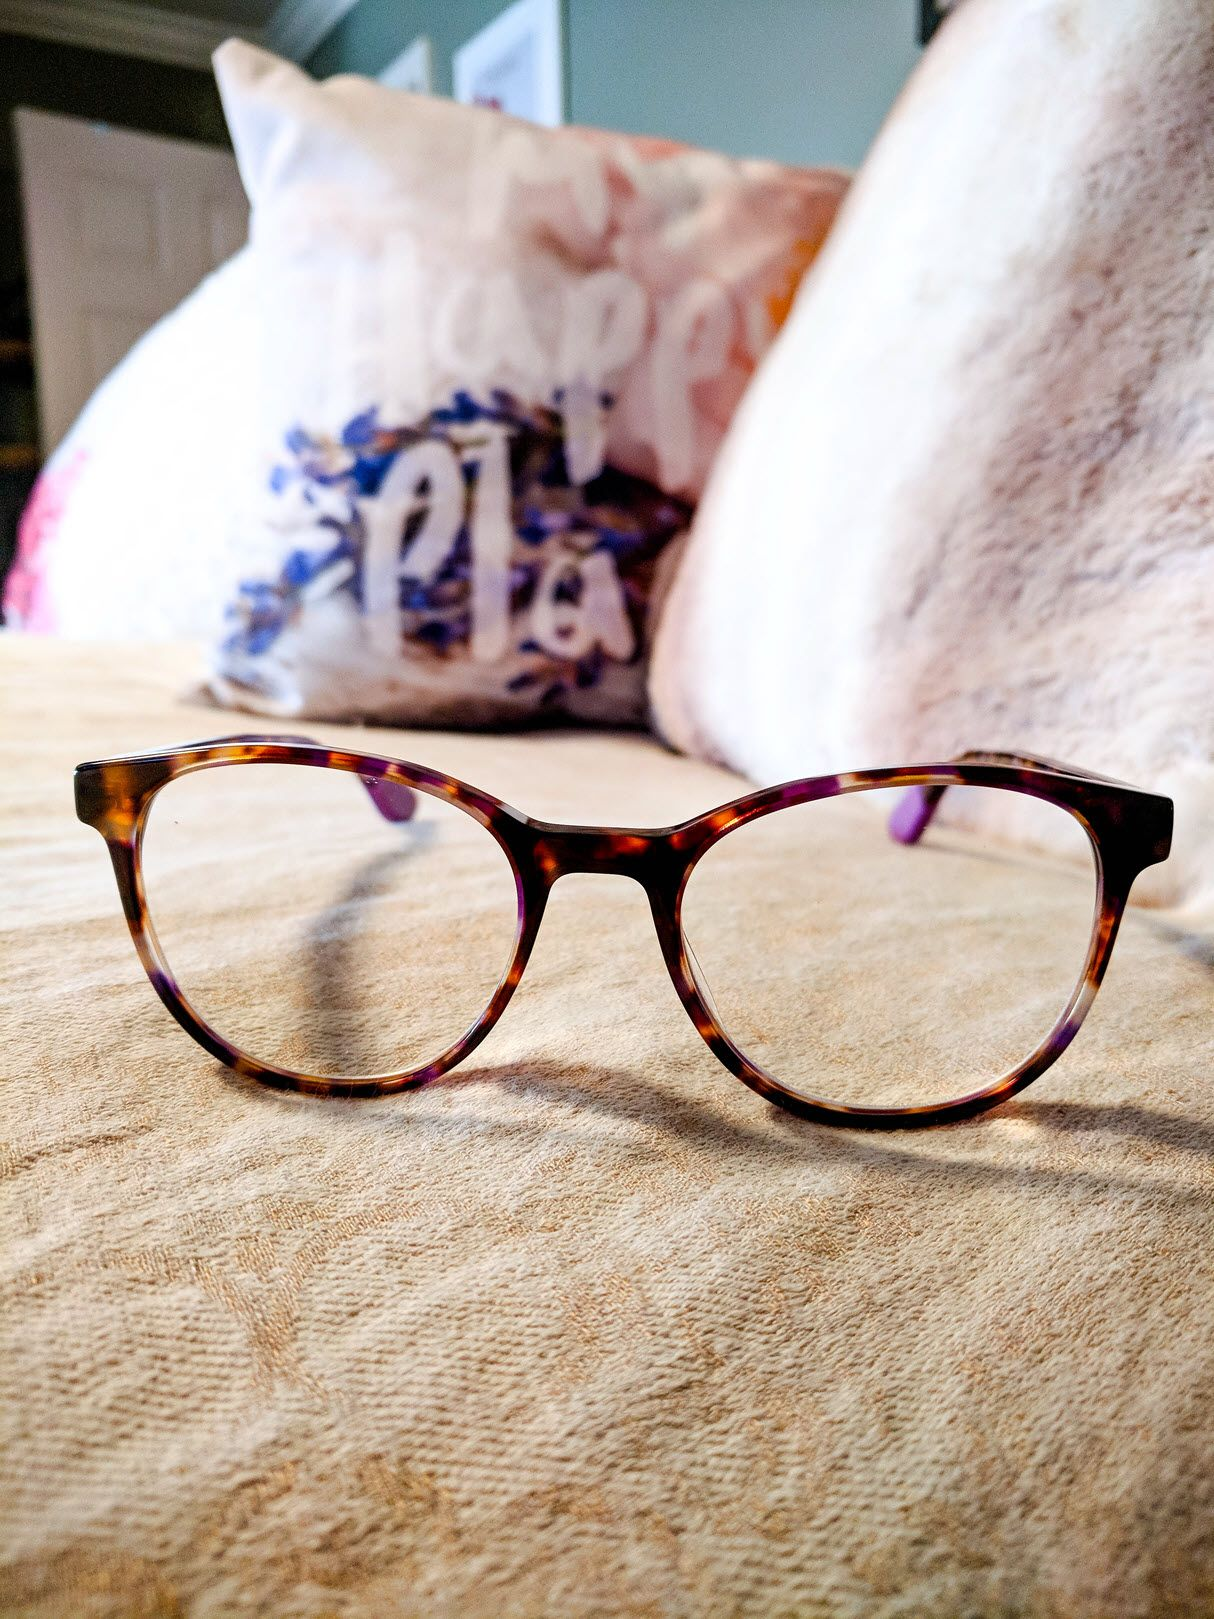 70a54ca844b Why I Will Never Buy Expensive Reading Glasses Again